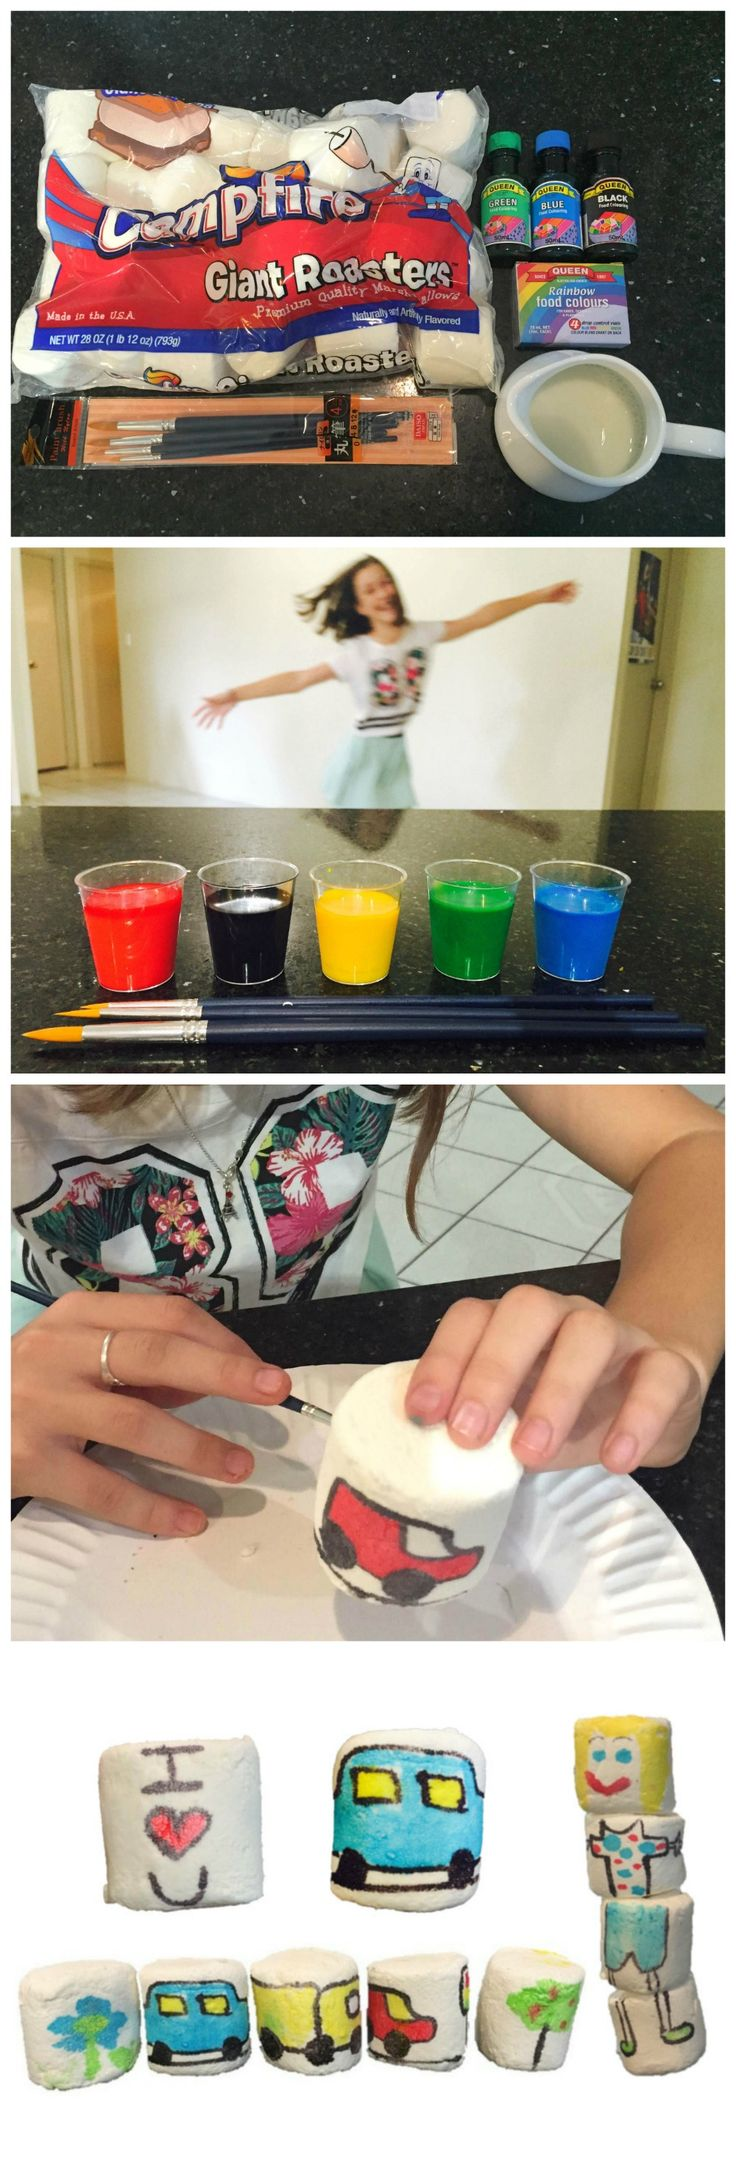 Design Your Own Marshmallows - Marshmallow Art - great for birthday parties